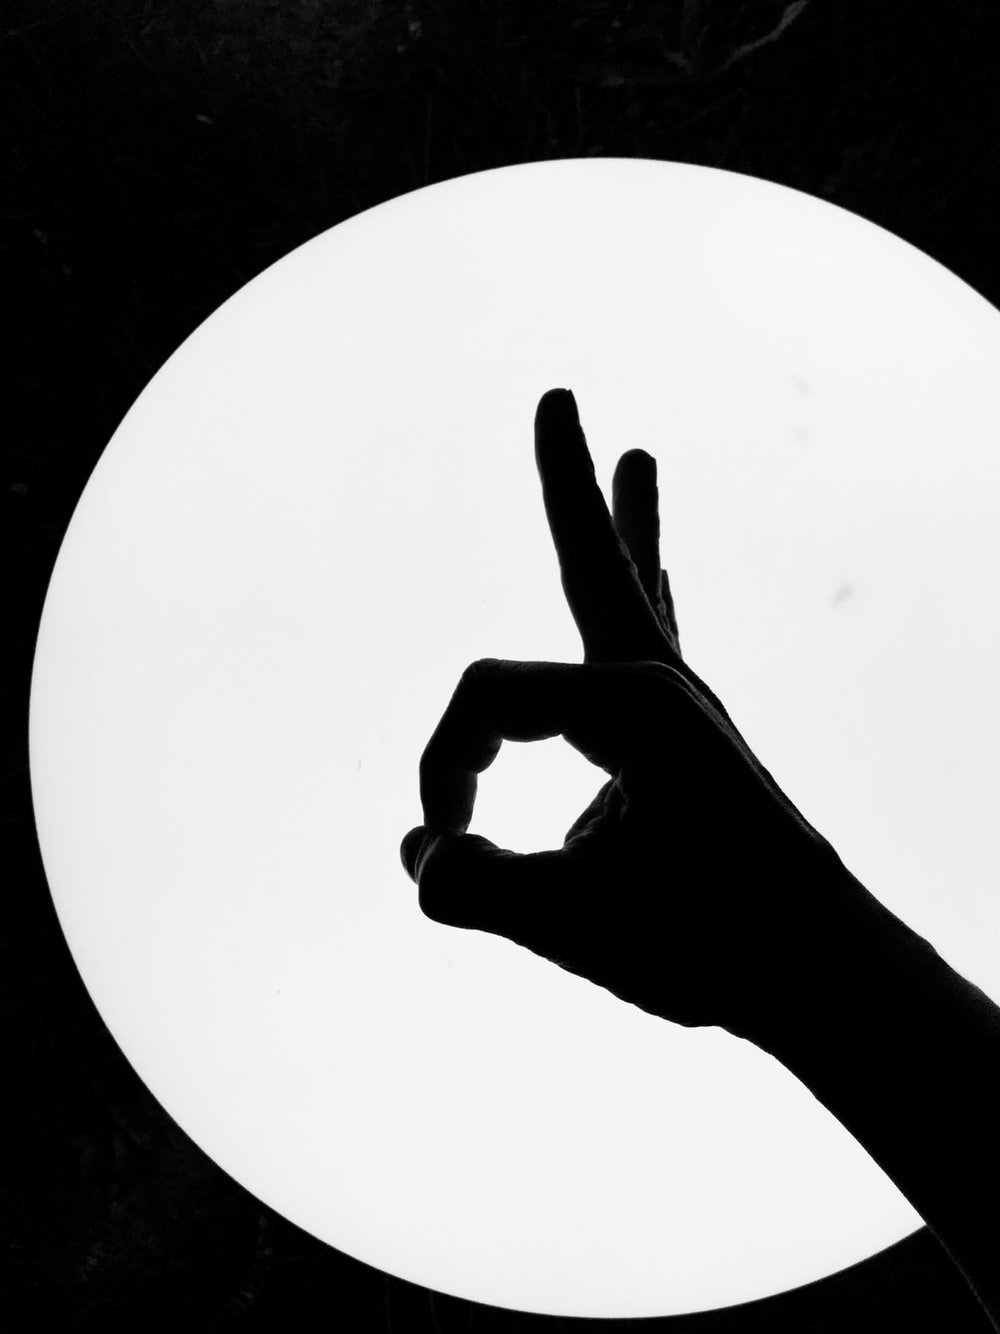 persons hand forming peace sign